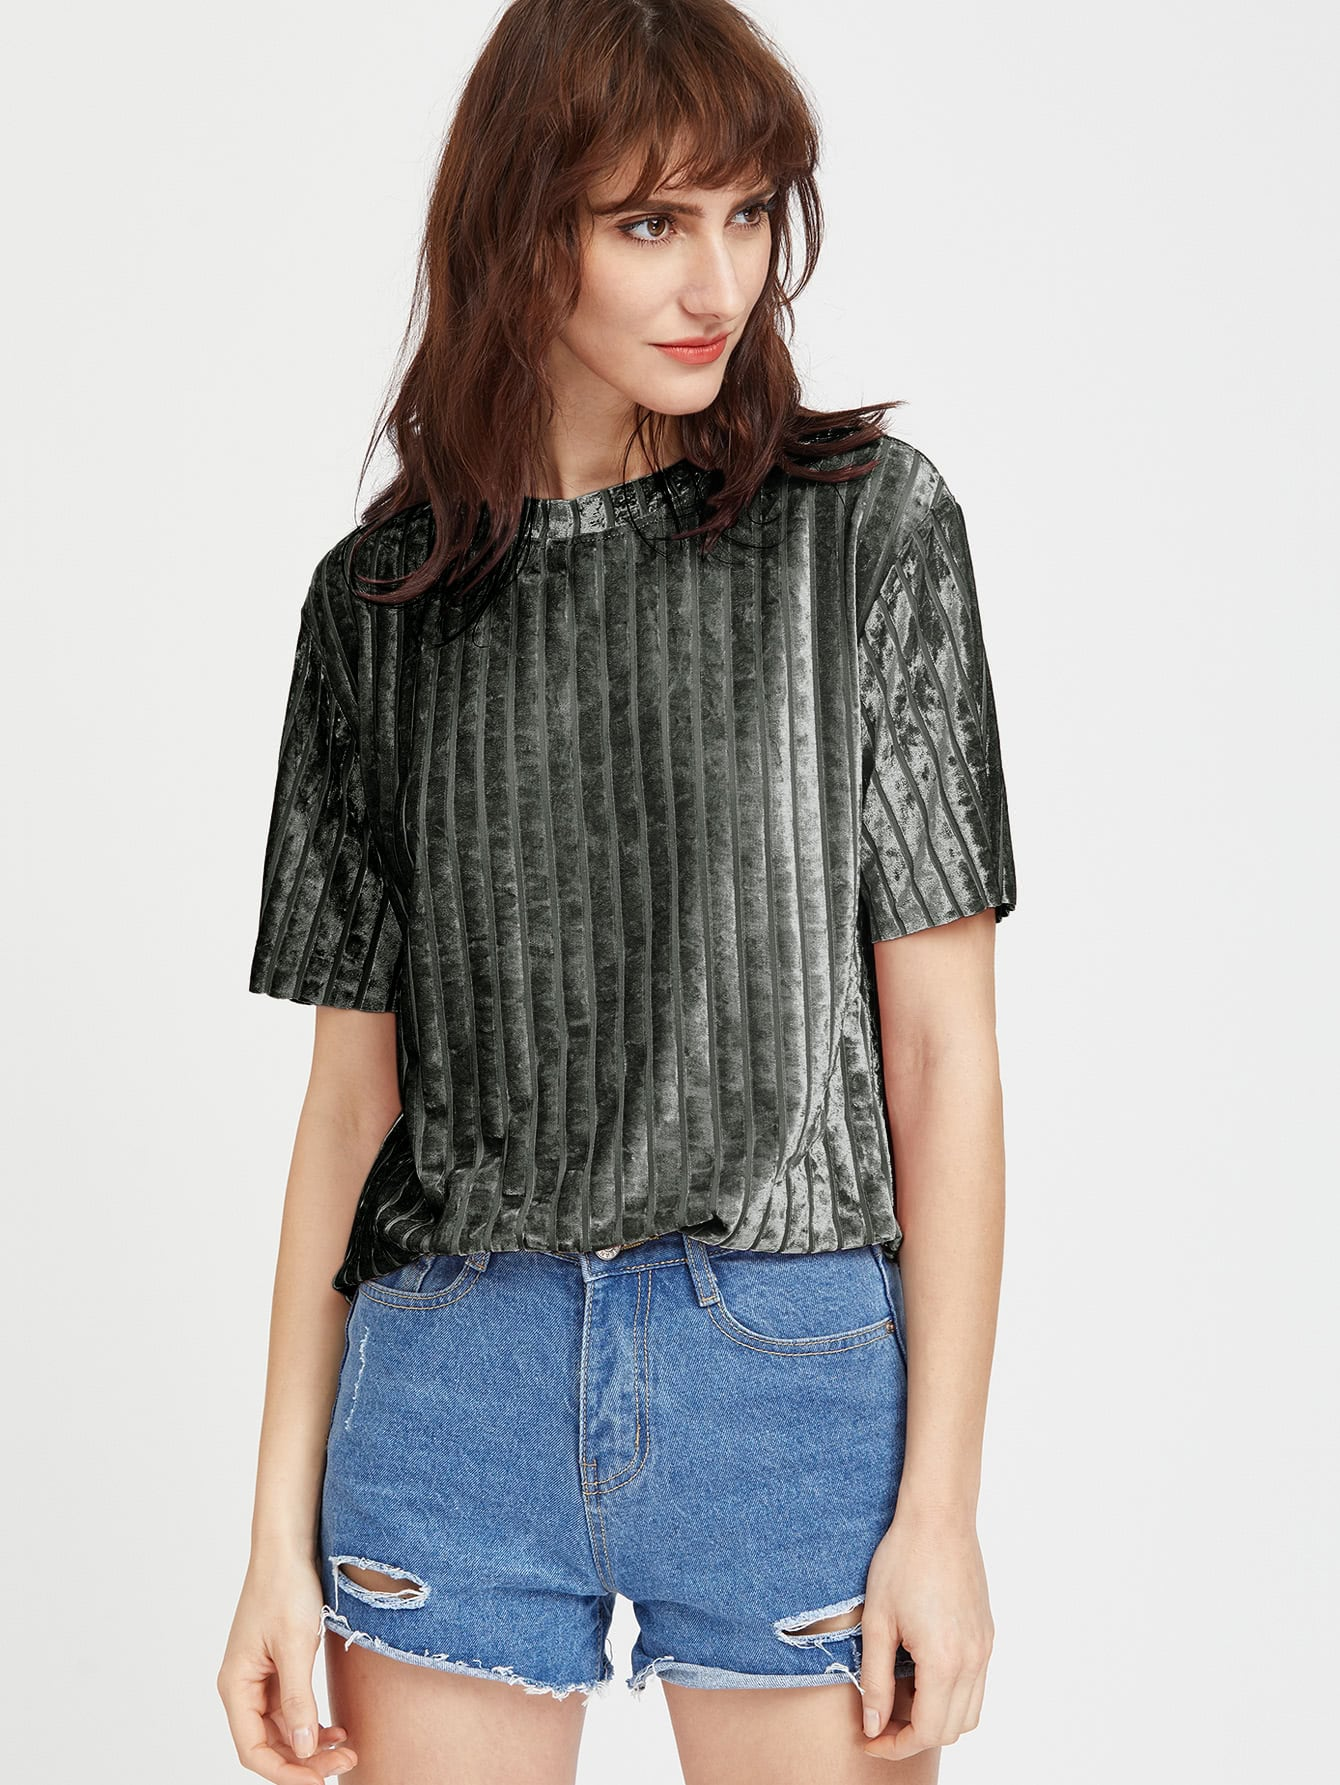 Ribbed Velvet Tee hollow lace shoulder knot front tee